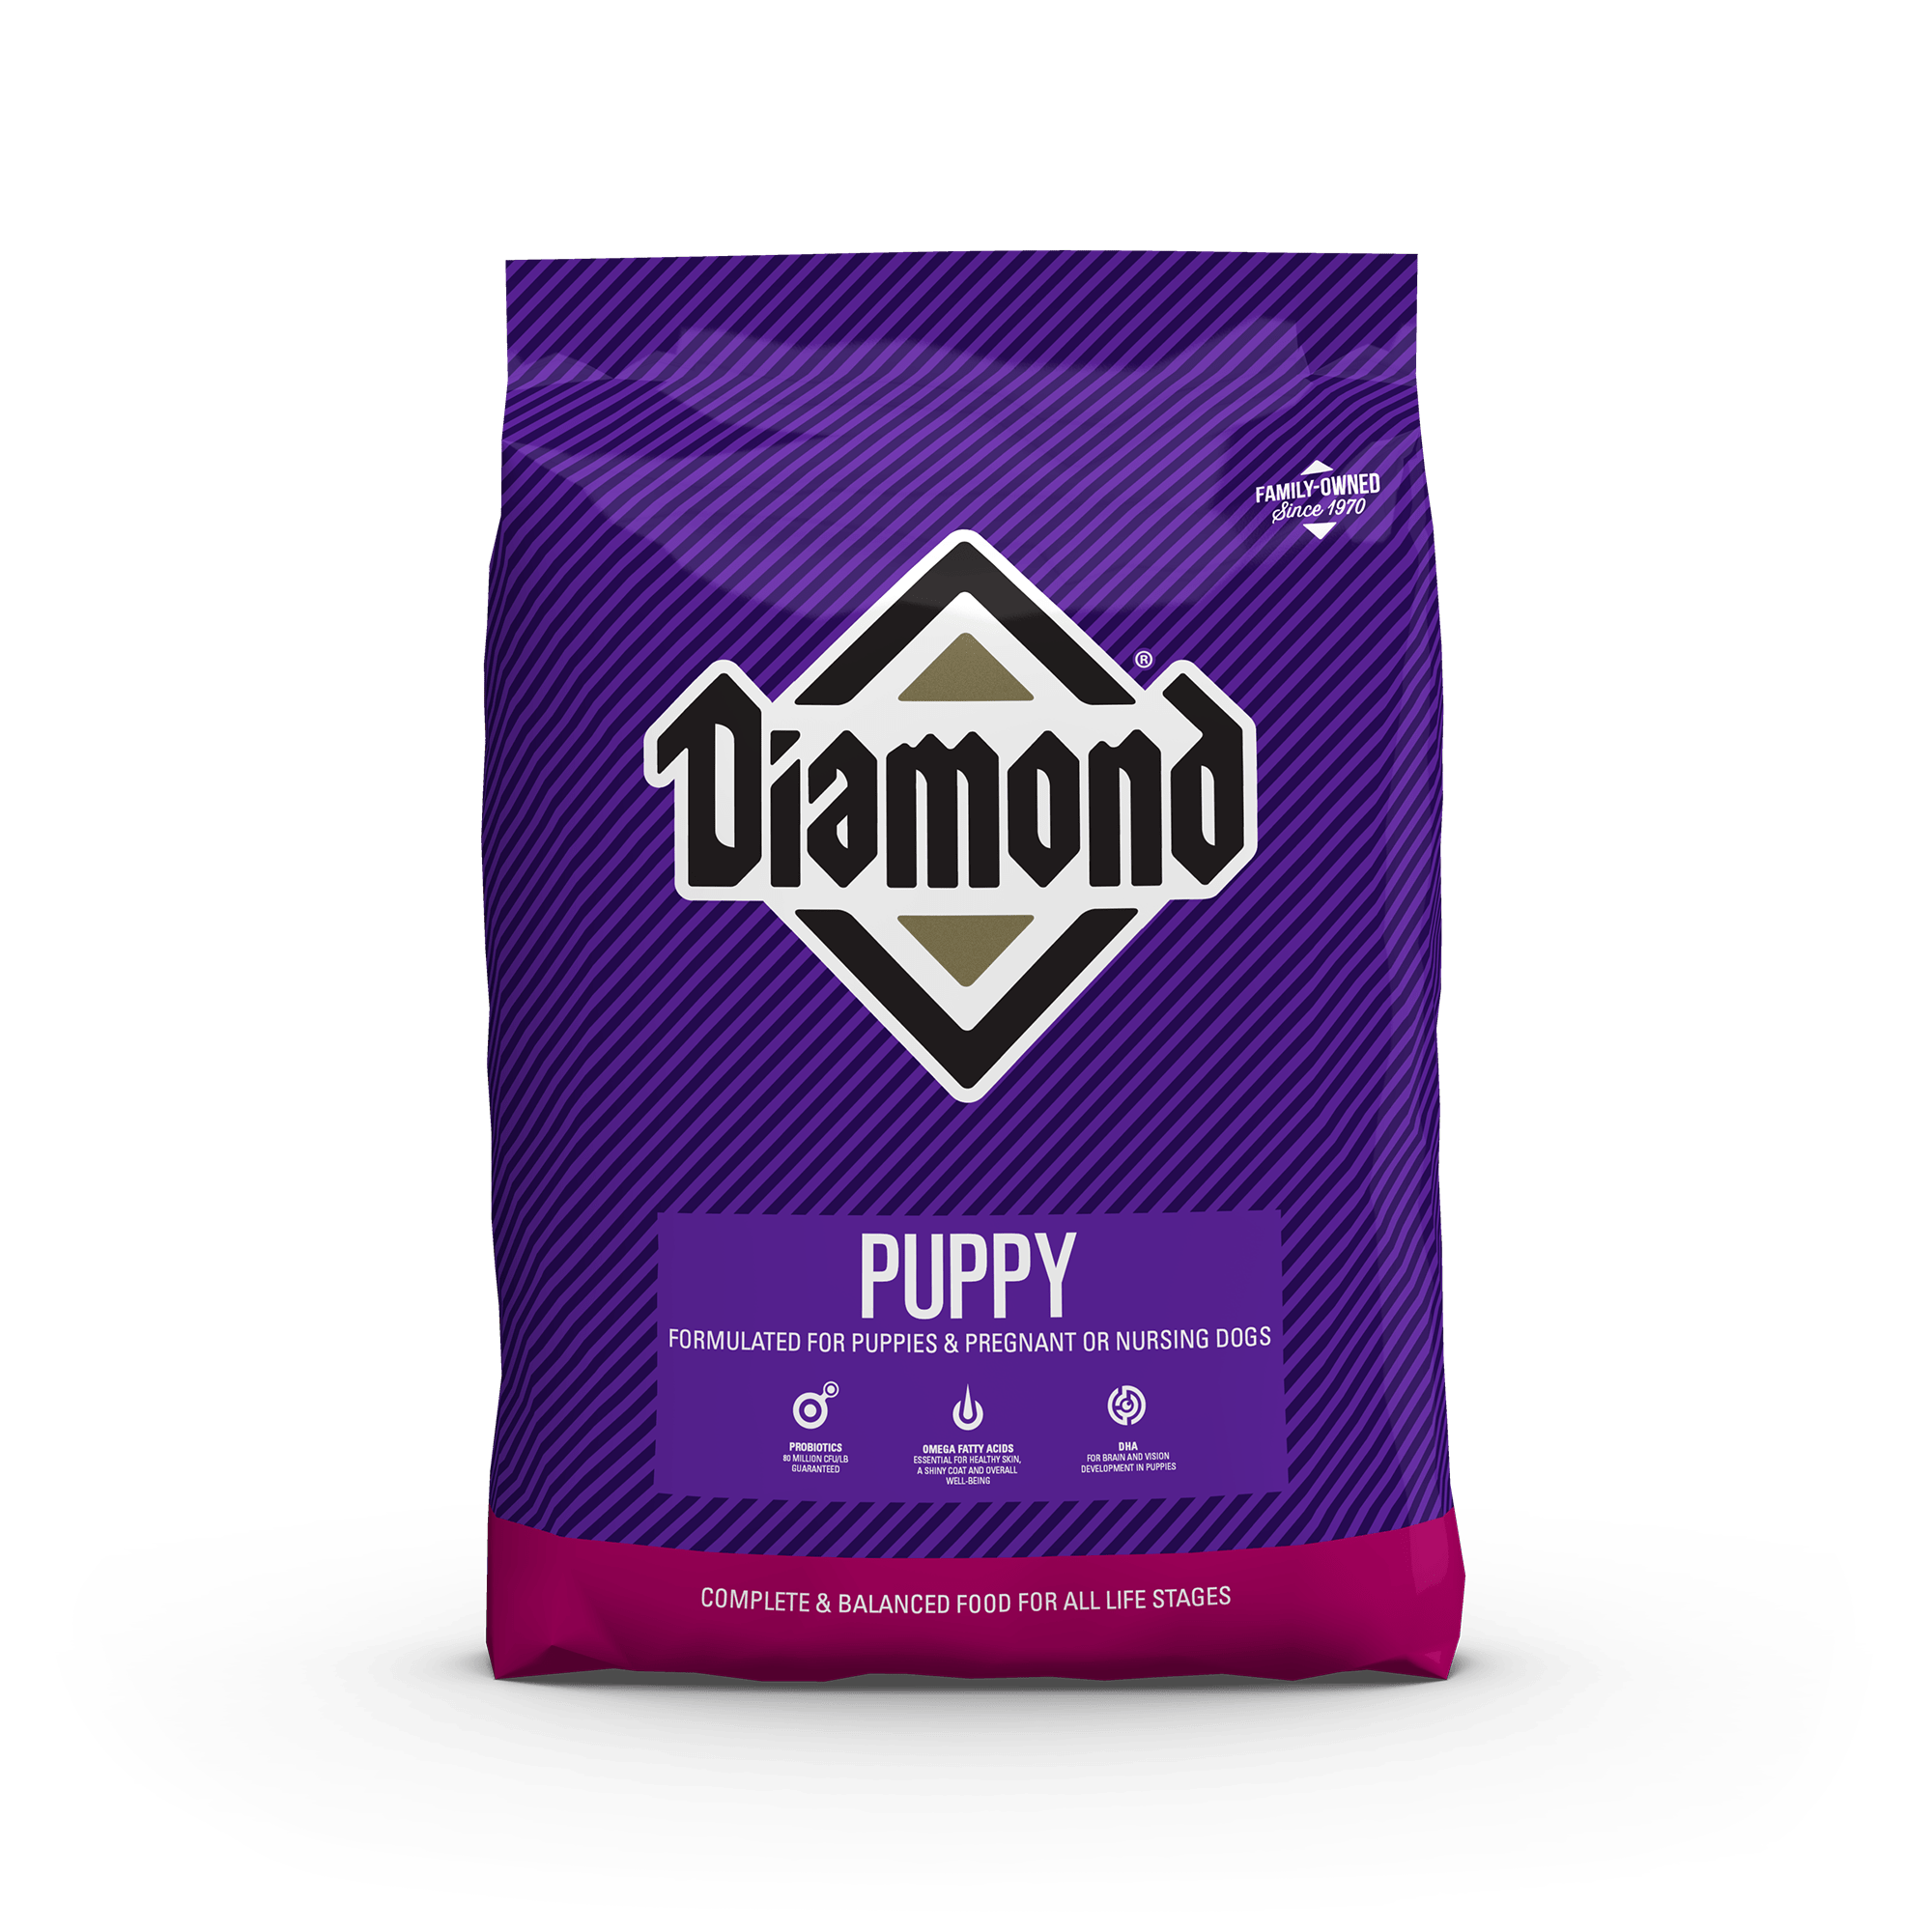 Puppy product packaging